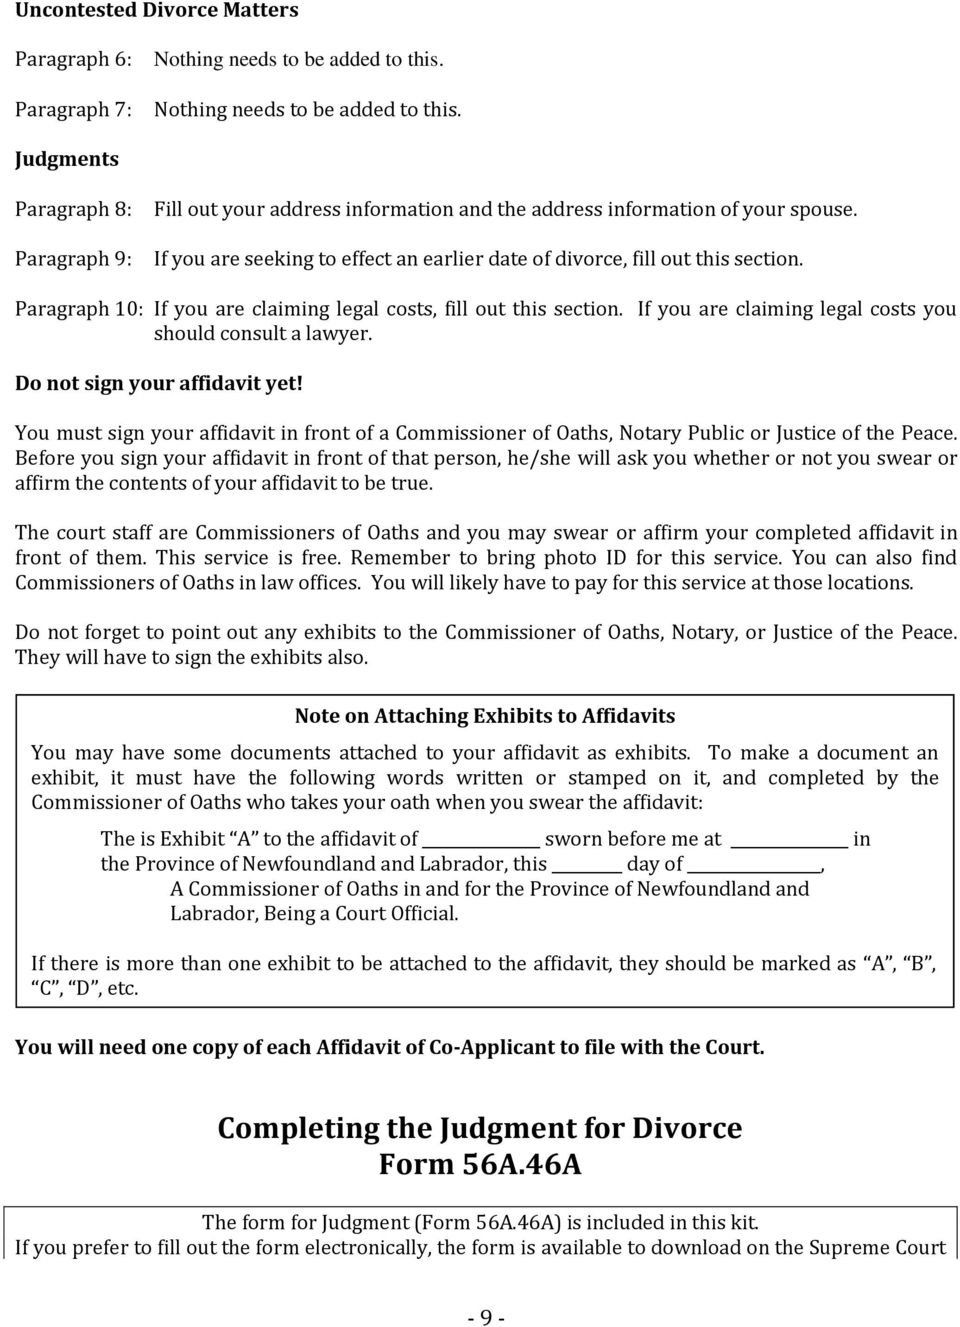 Joint or co applicant uncontested divorce self help kit pdf if you are seeking to effect an earlier date of divorce fill out this section solutioingenieria Choice Image